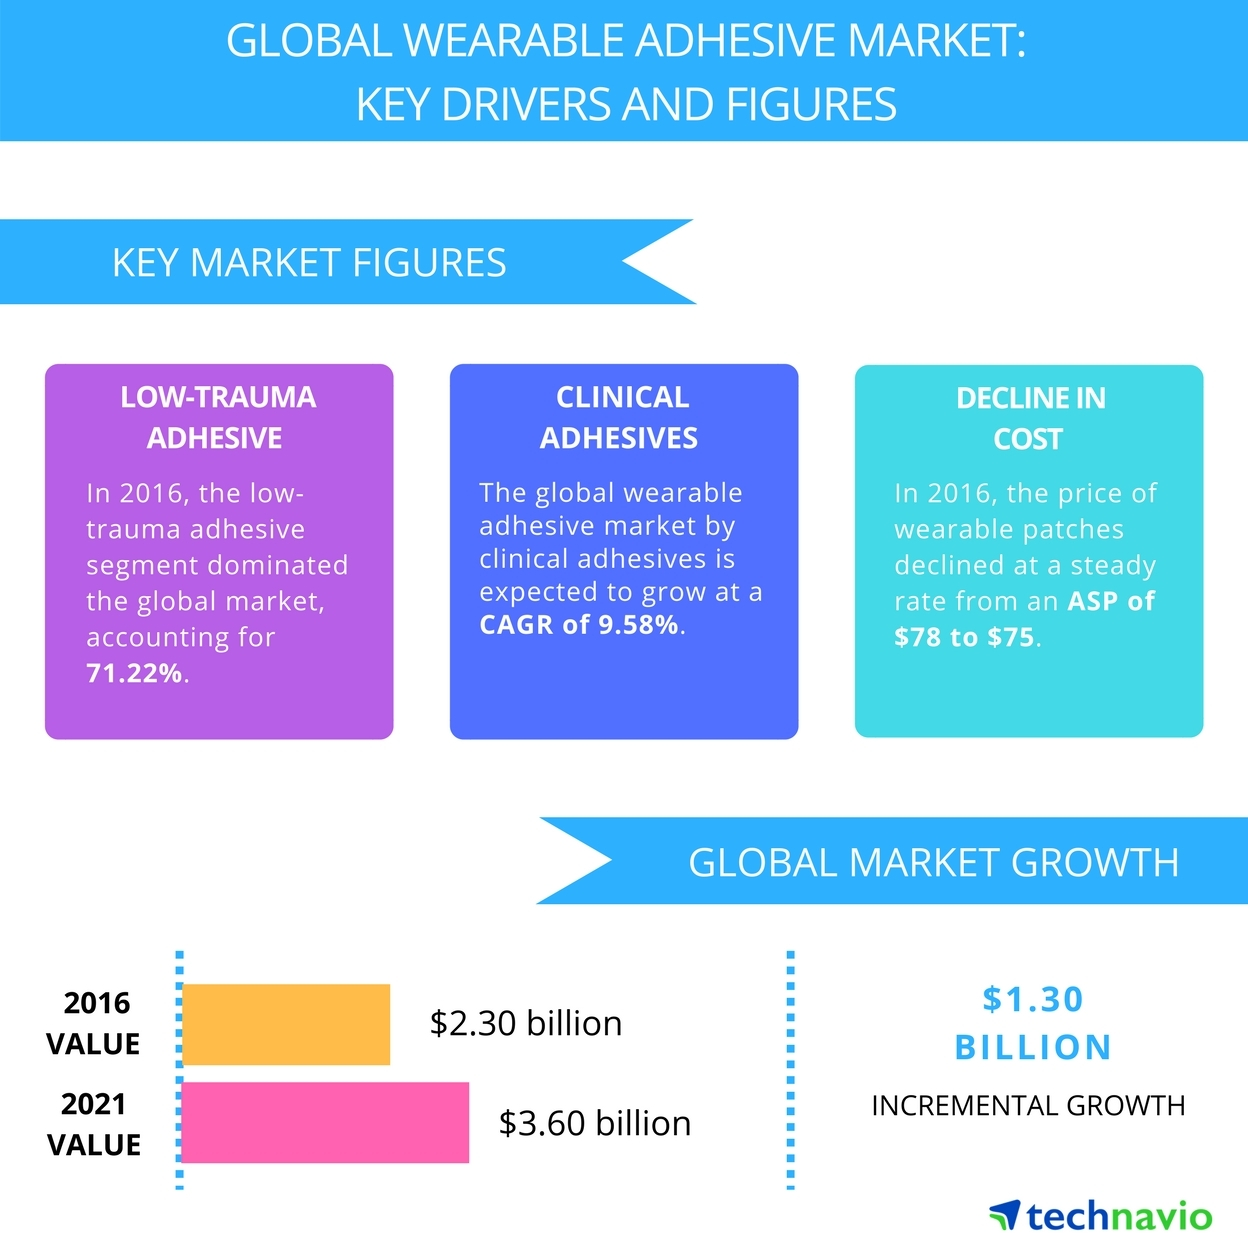 Technavio has published a new report on the global wearable adhesive market from 2017-2021. (Graphic: Business Wire)